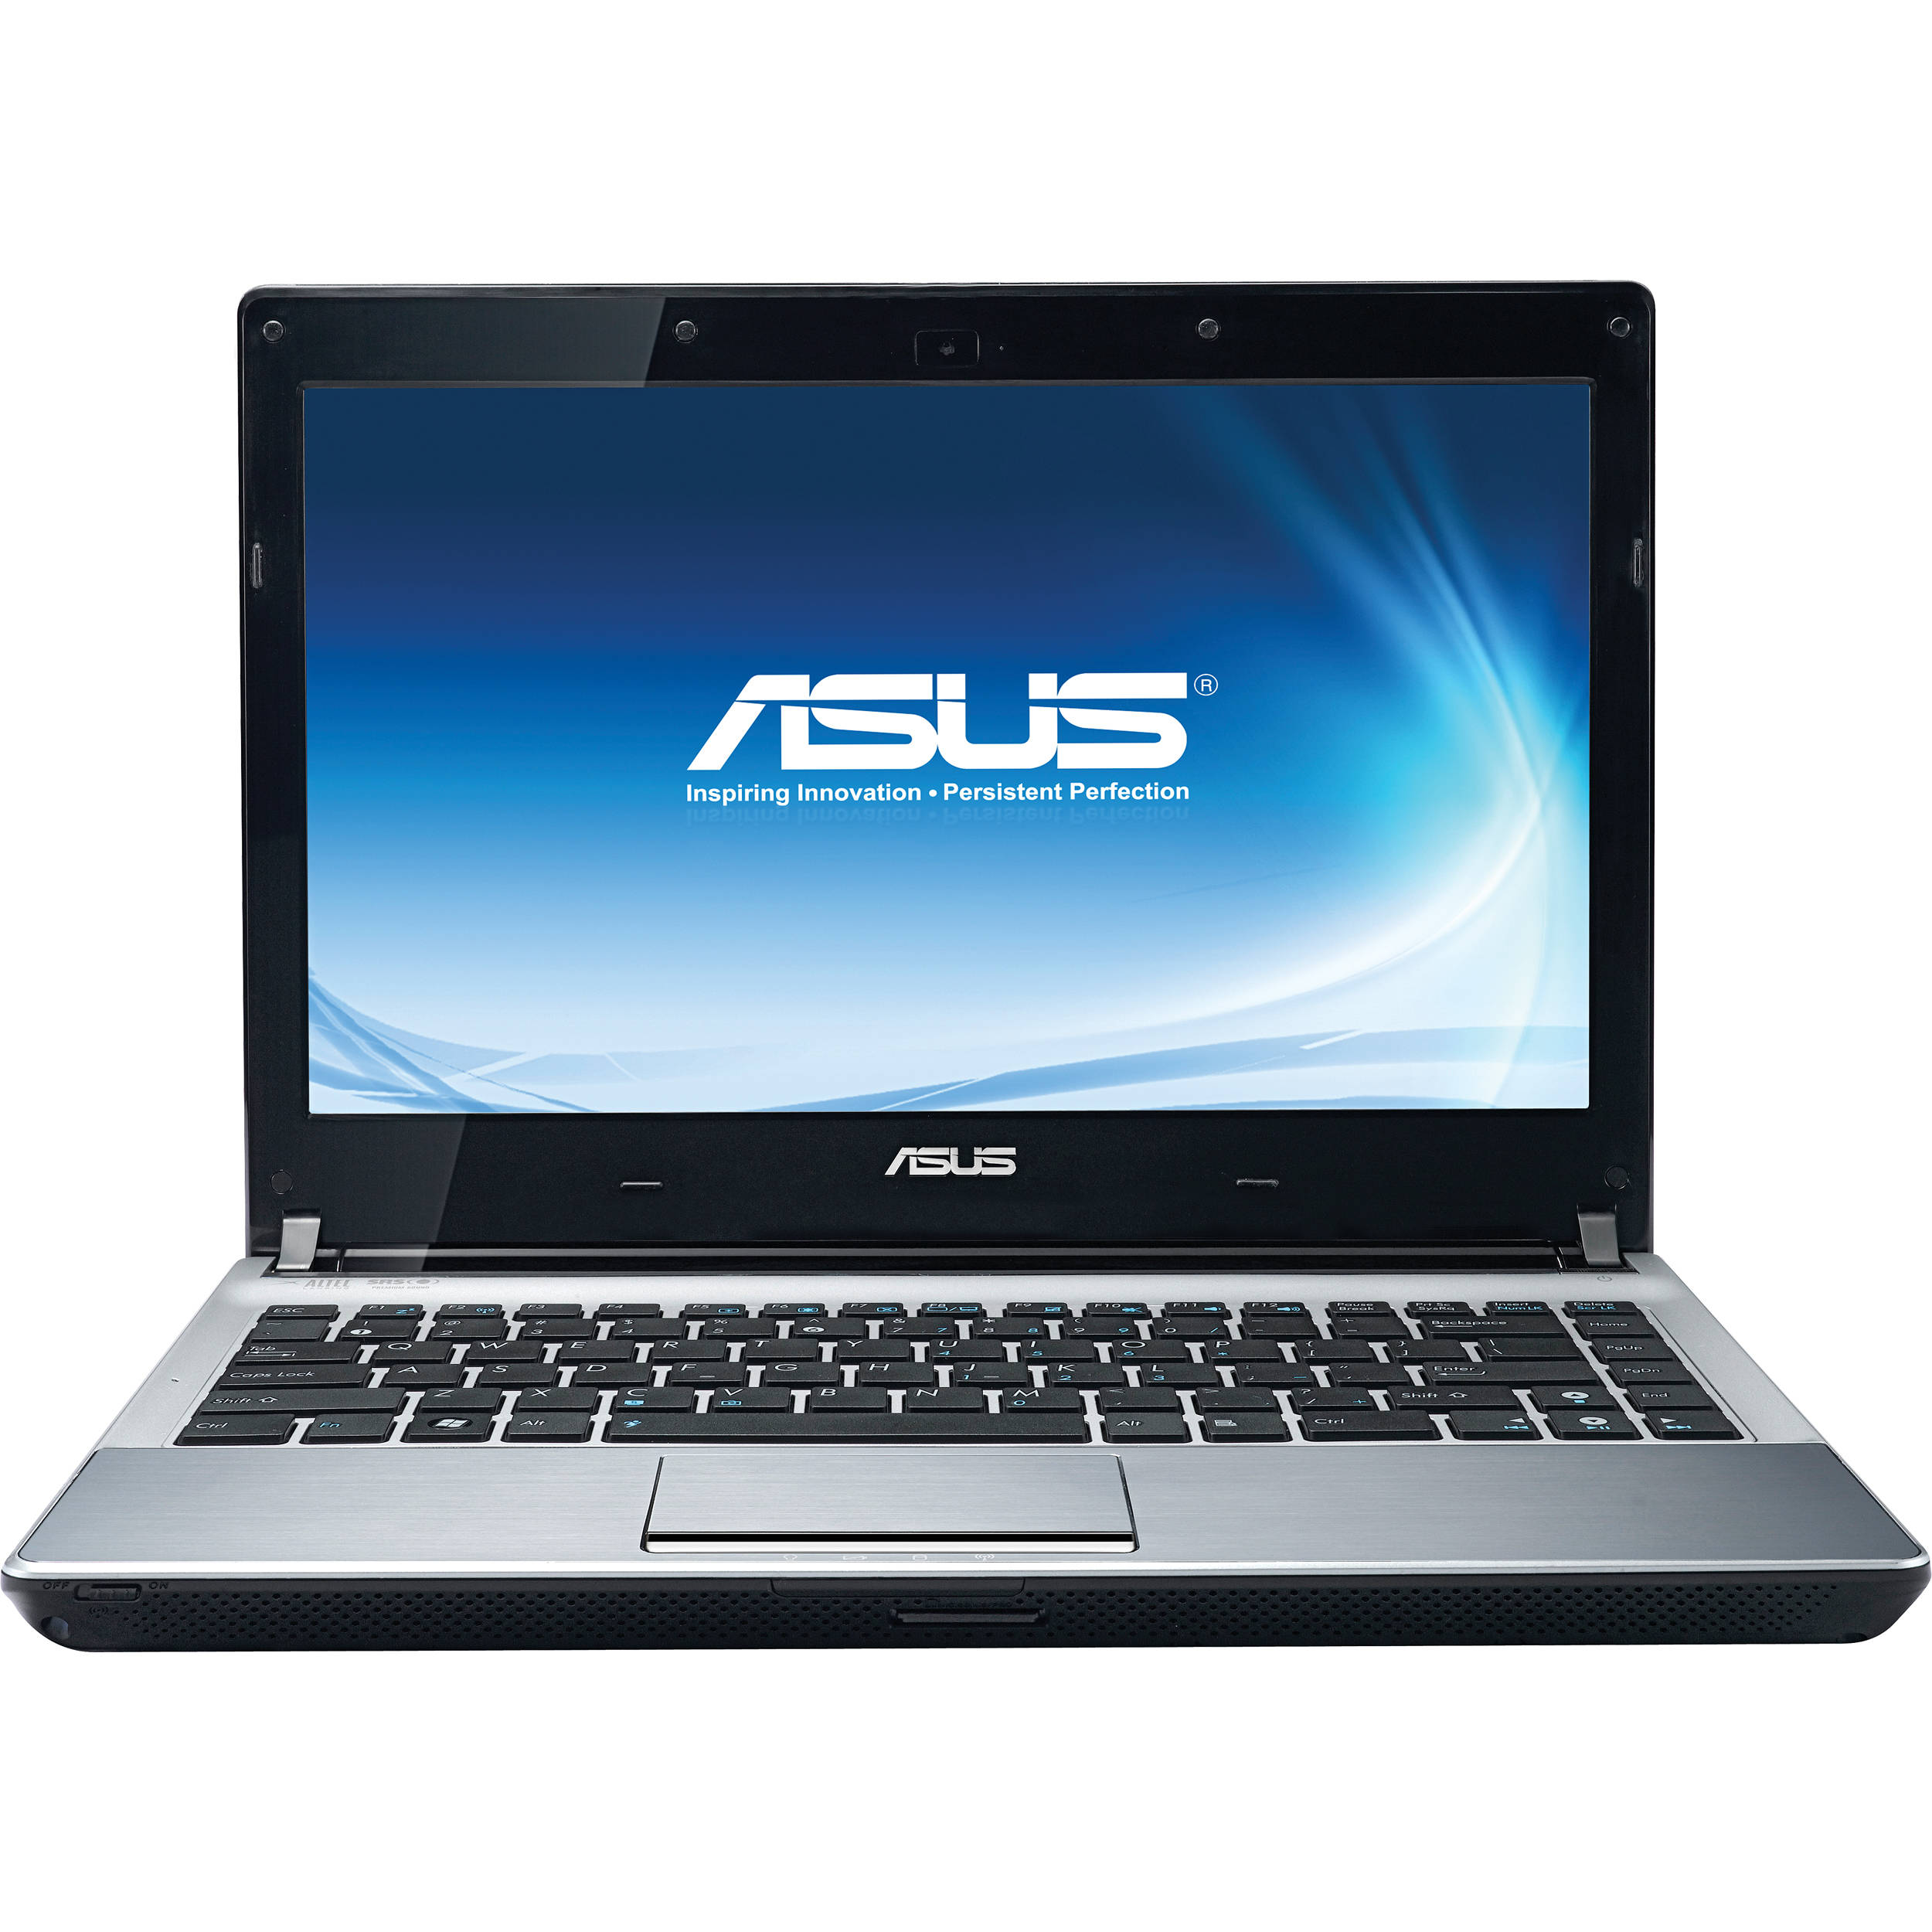 Asus U30JC Notebook Azurewave WLAN Driver Download